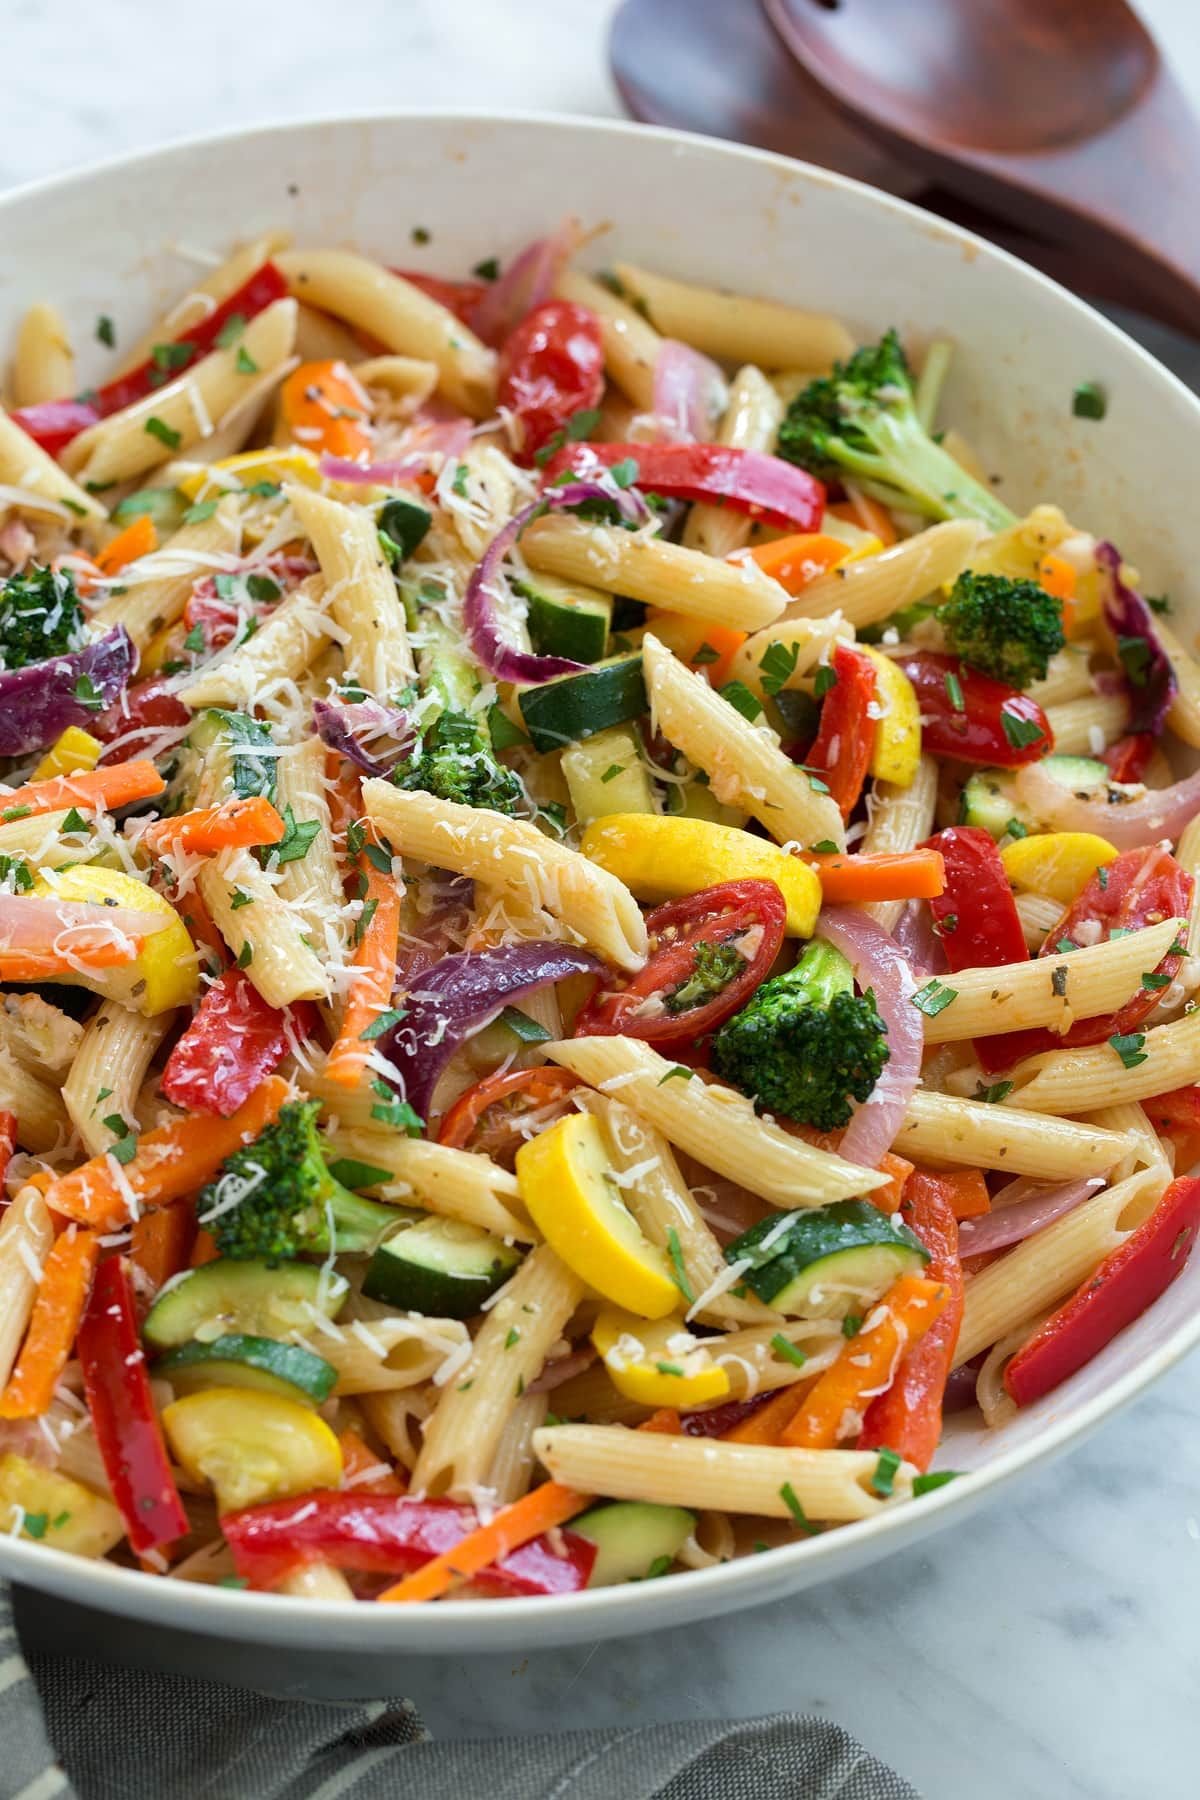 Summer Dinner Recipes To Get Your Veggies In Society19 In 2020 Easy Delicious Dinners Pasta Primavera Recipe Yummy Dinners